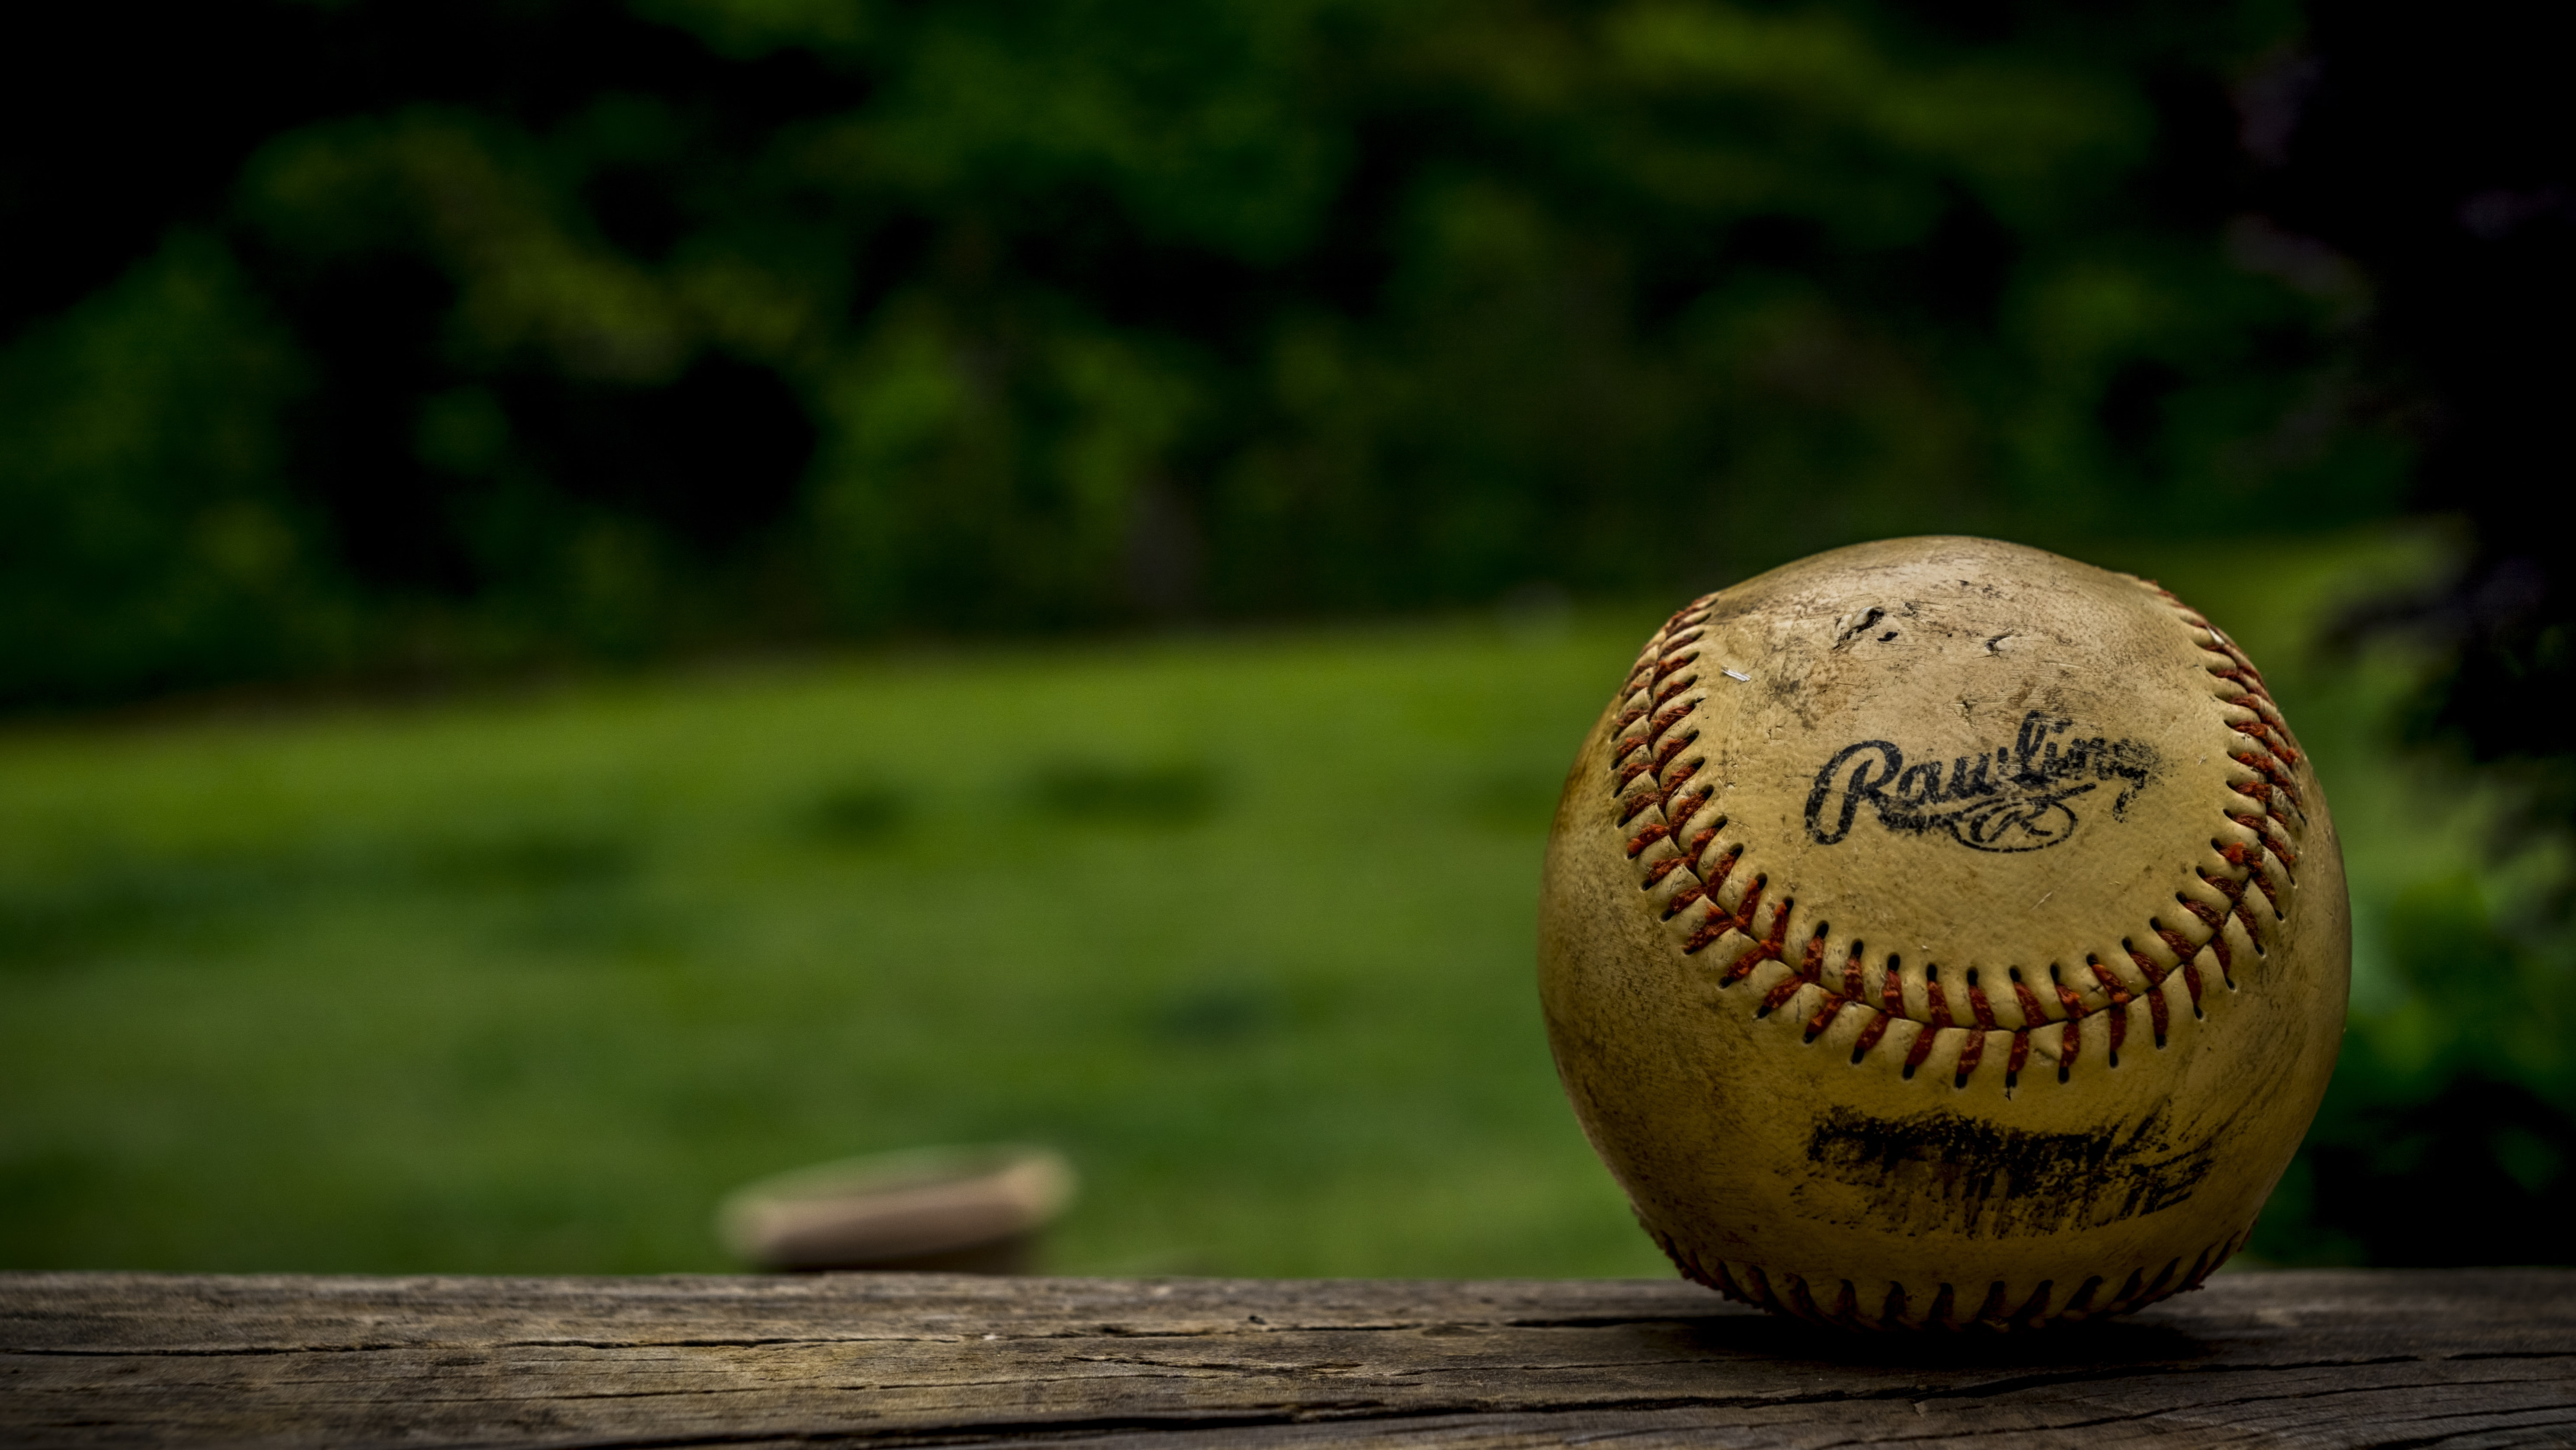 The macro view of an old baseball on a wood surface